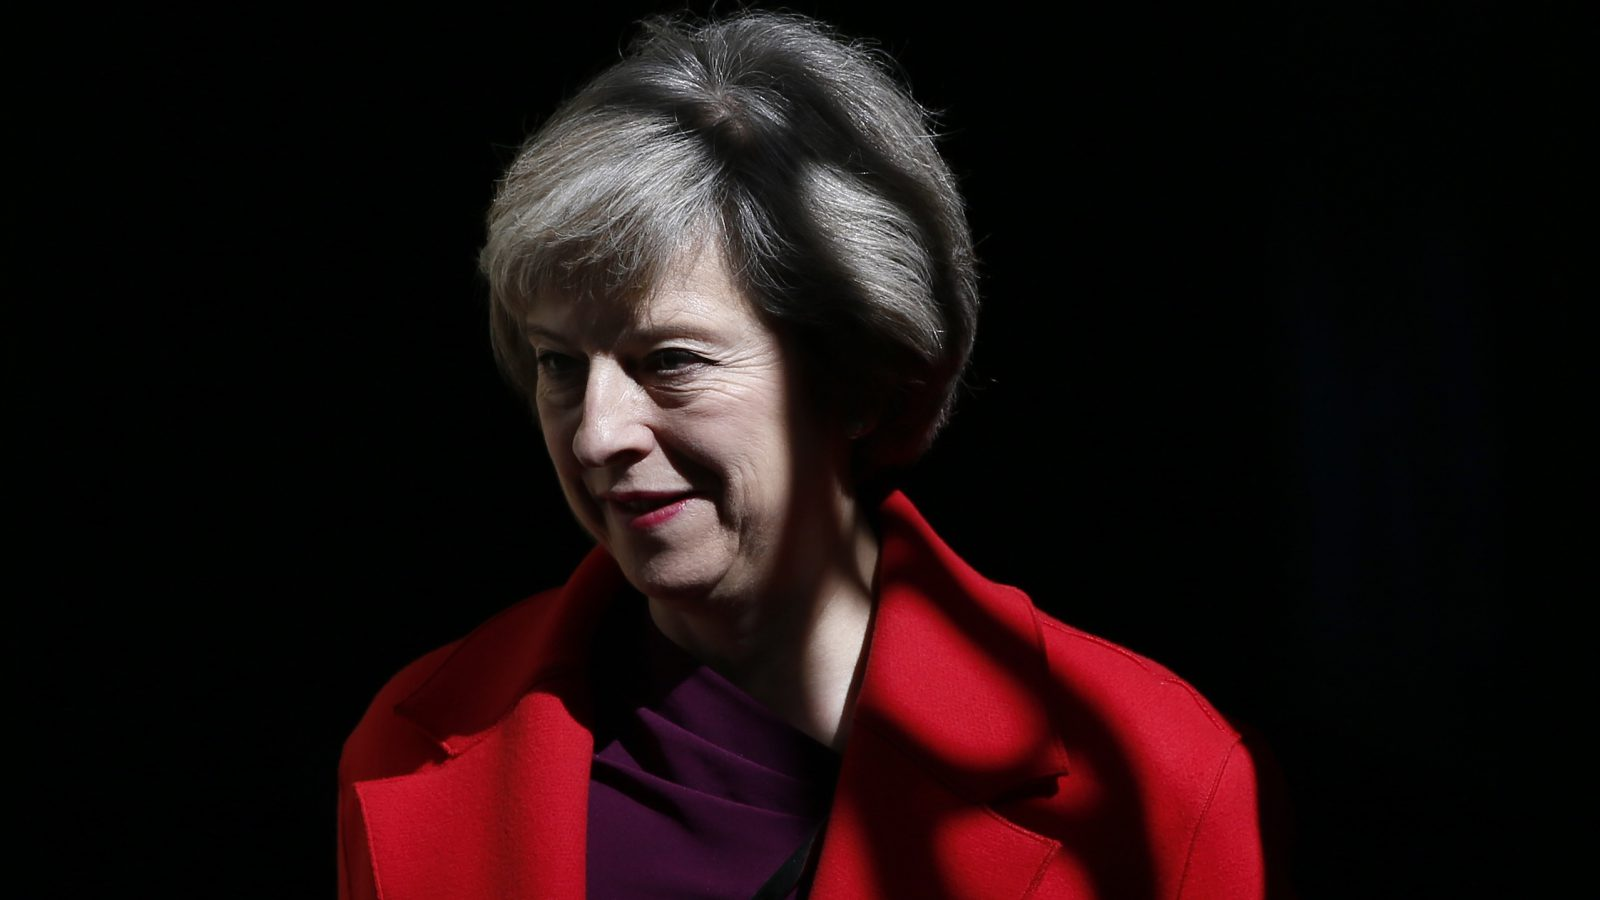 Britain's Home Secretary Theresa May  leaves 10 Downing Street in London, Britain April 12, 2016.  REUTERS/Stefan Wermuth  TPX IMAGES OF THE DAY - RTX29K94